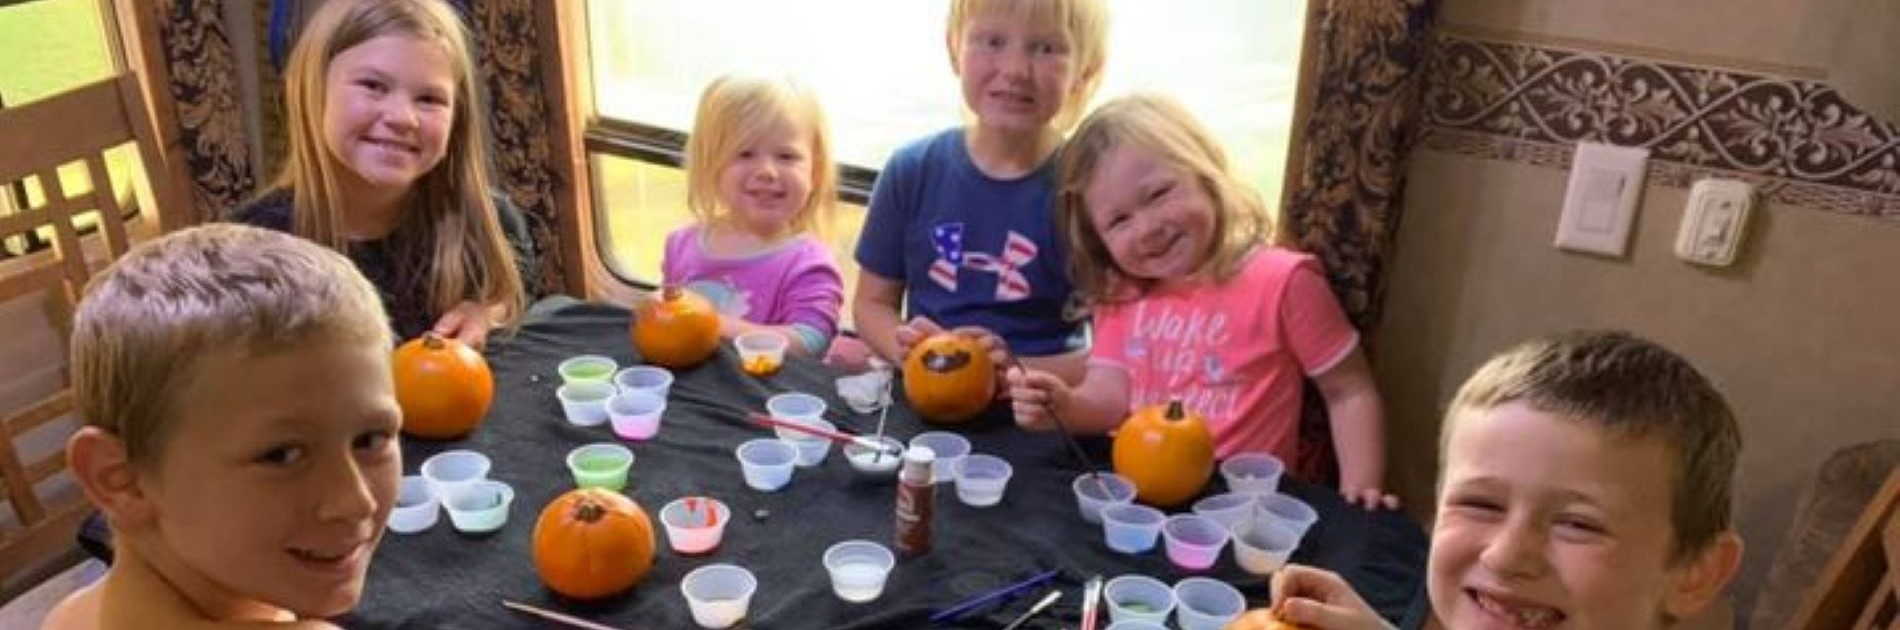 Students decorating pumpkins